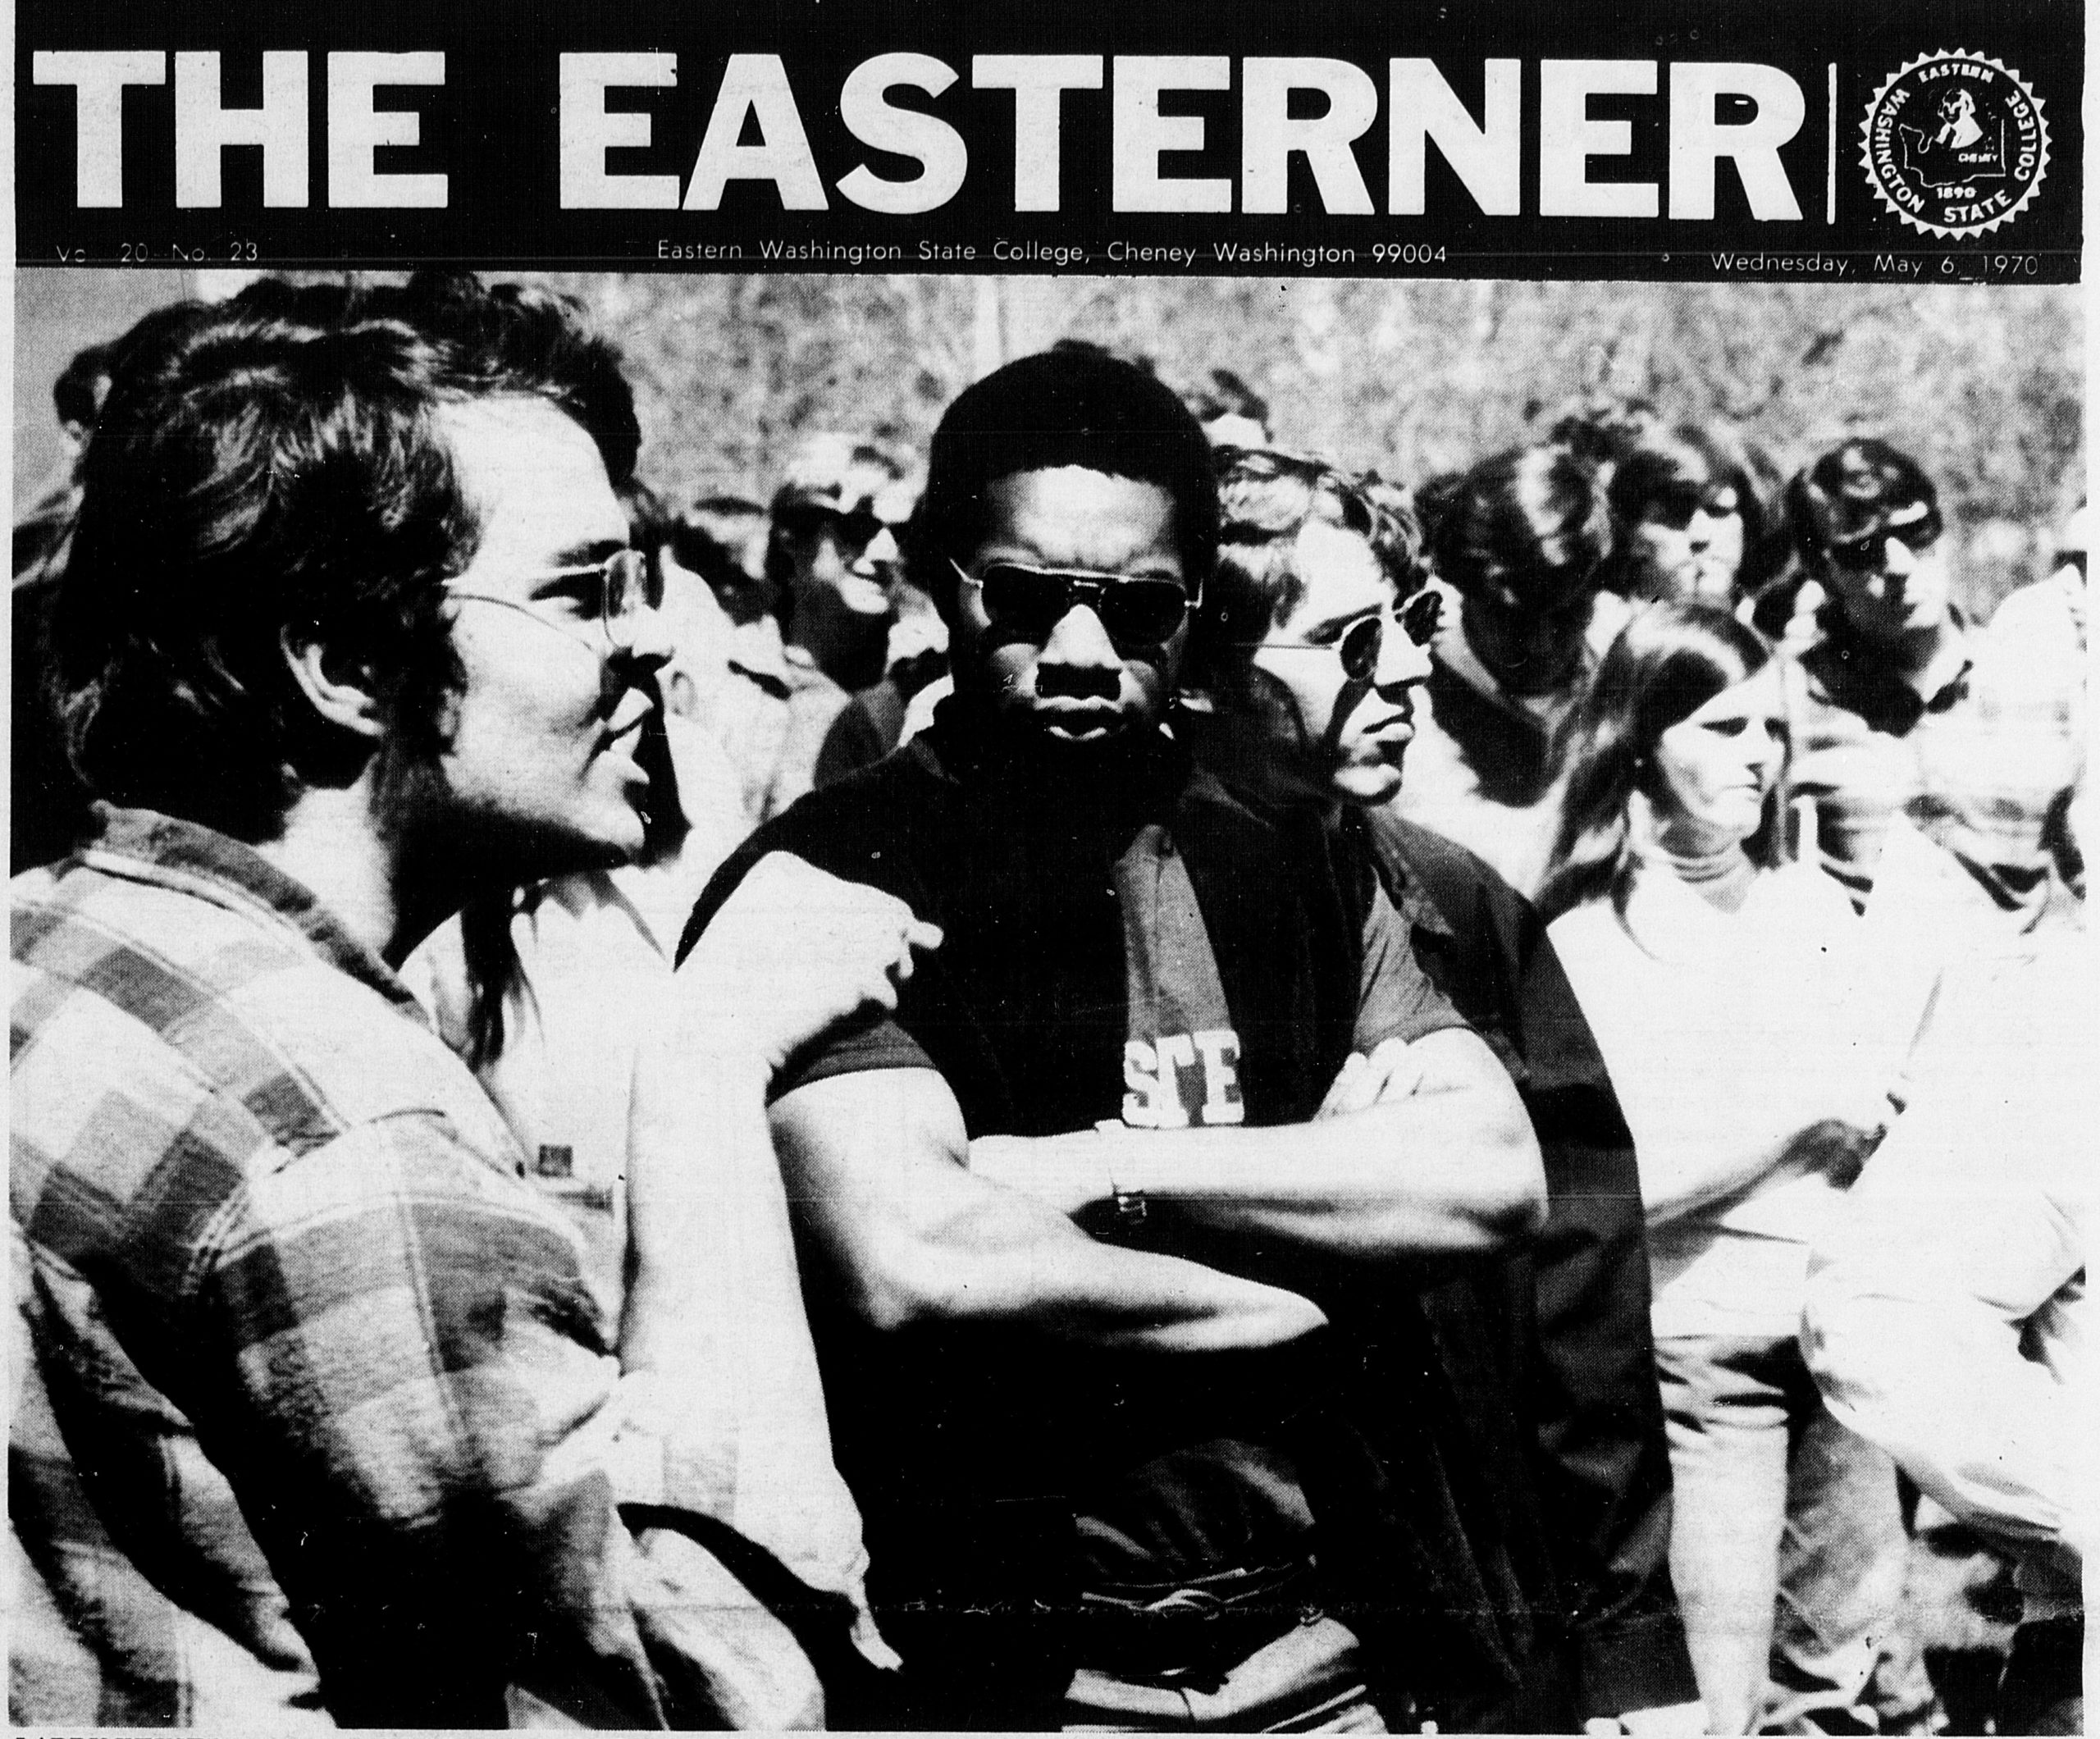 Cover of the Easterner, Vol. 20, no. 23, May 6, 1970